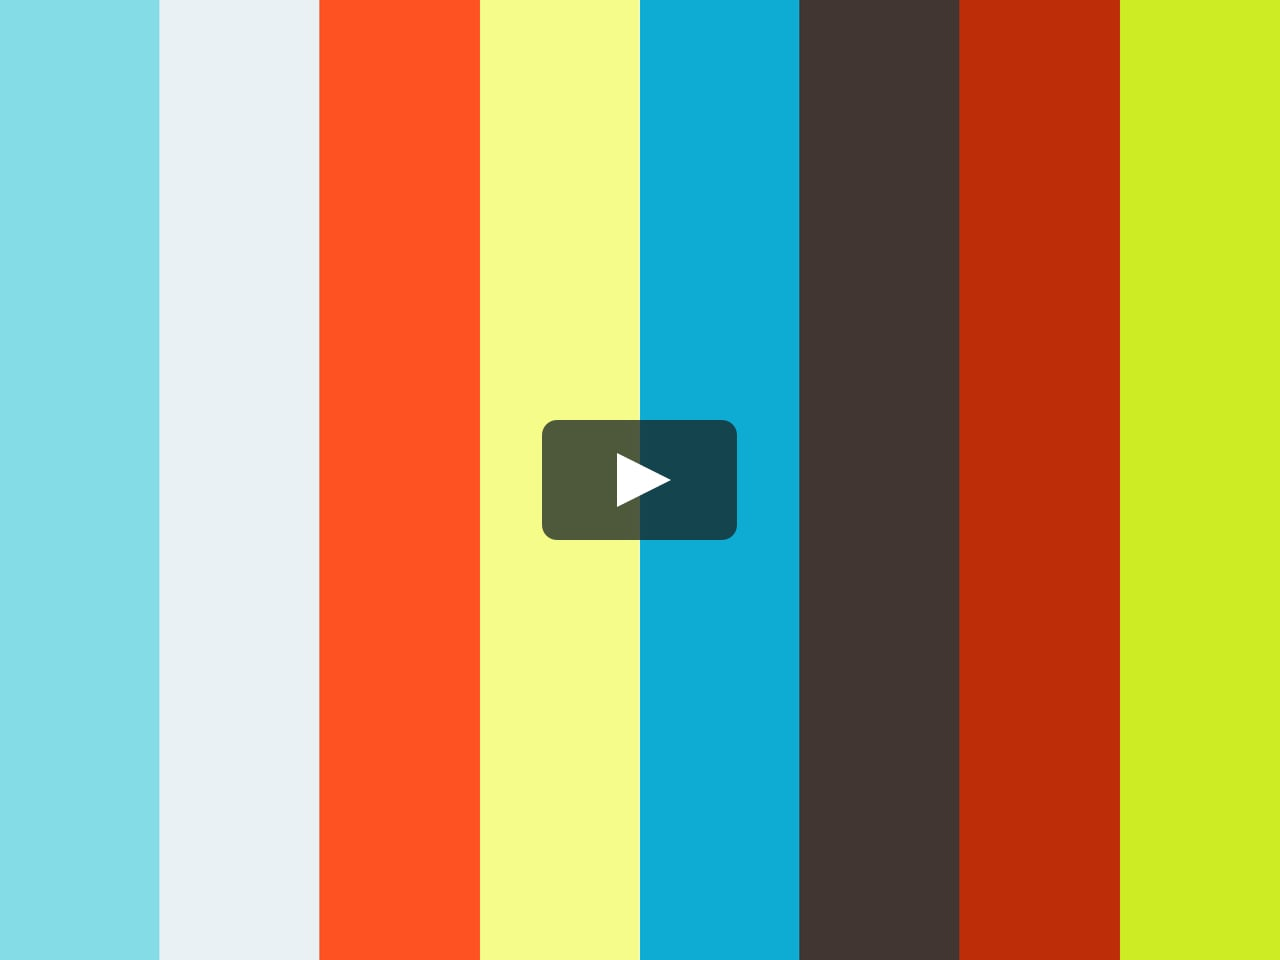 the alchemist by paulo coelho and the prophet by kahlil gibran the alchemist by paulo coelho and the prophet by kahlil gibran book review on